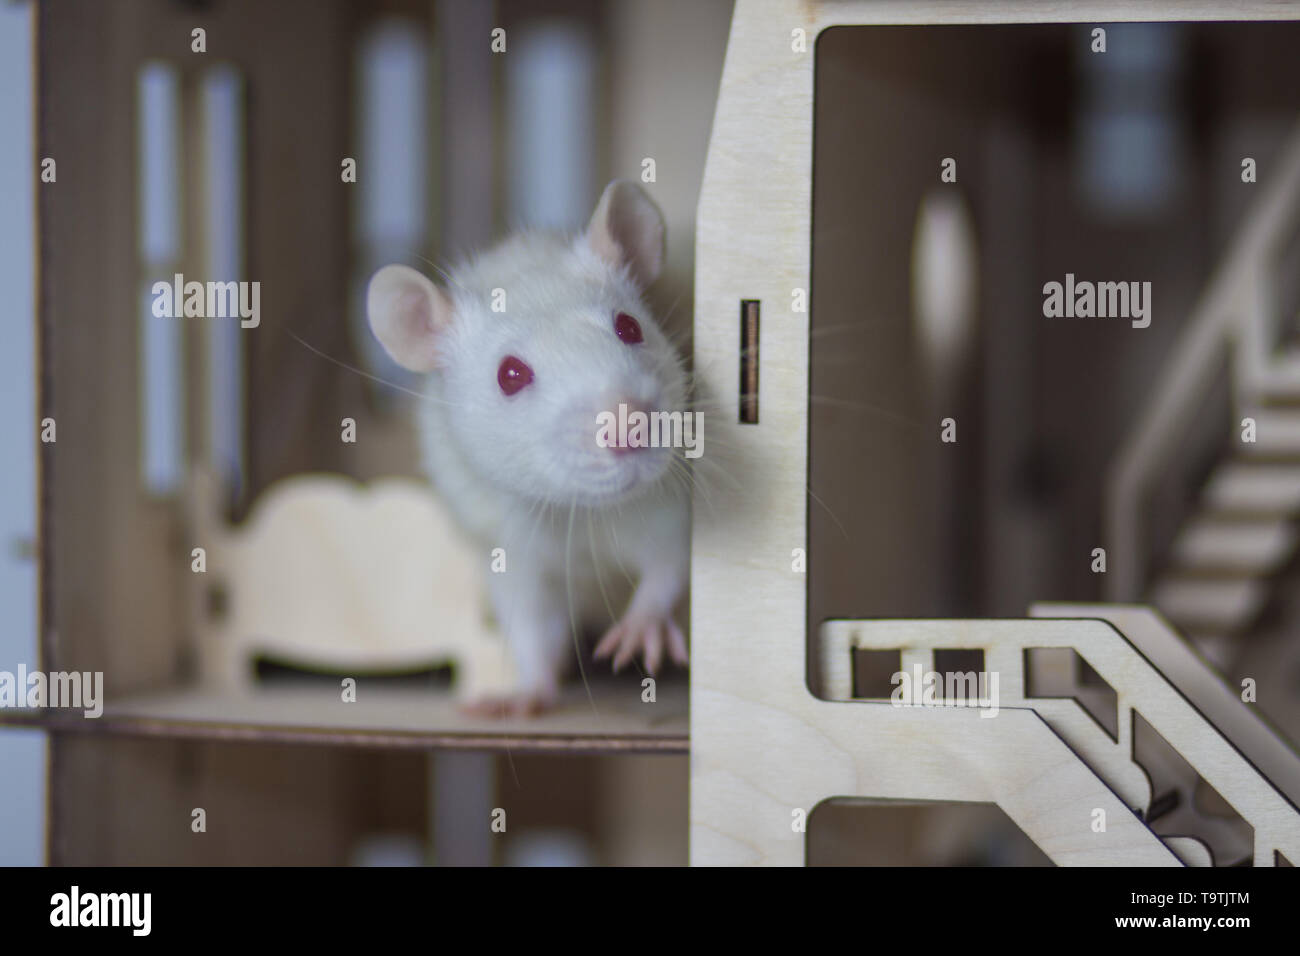 The concept of hiding. White mouse hiding in the house. Rat sitting behind the wall. - Stock Image